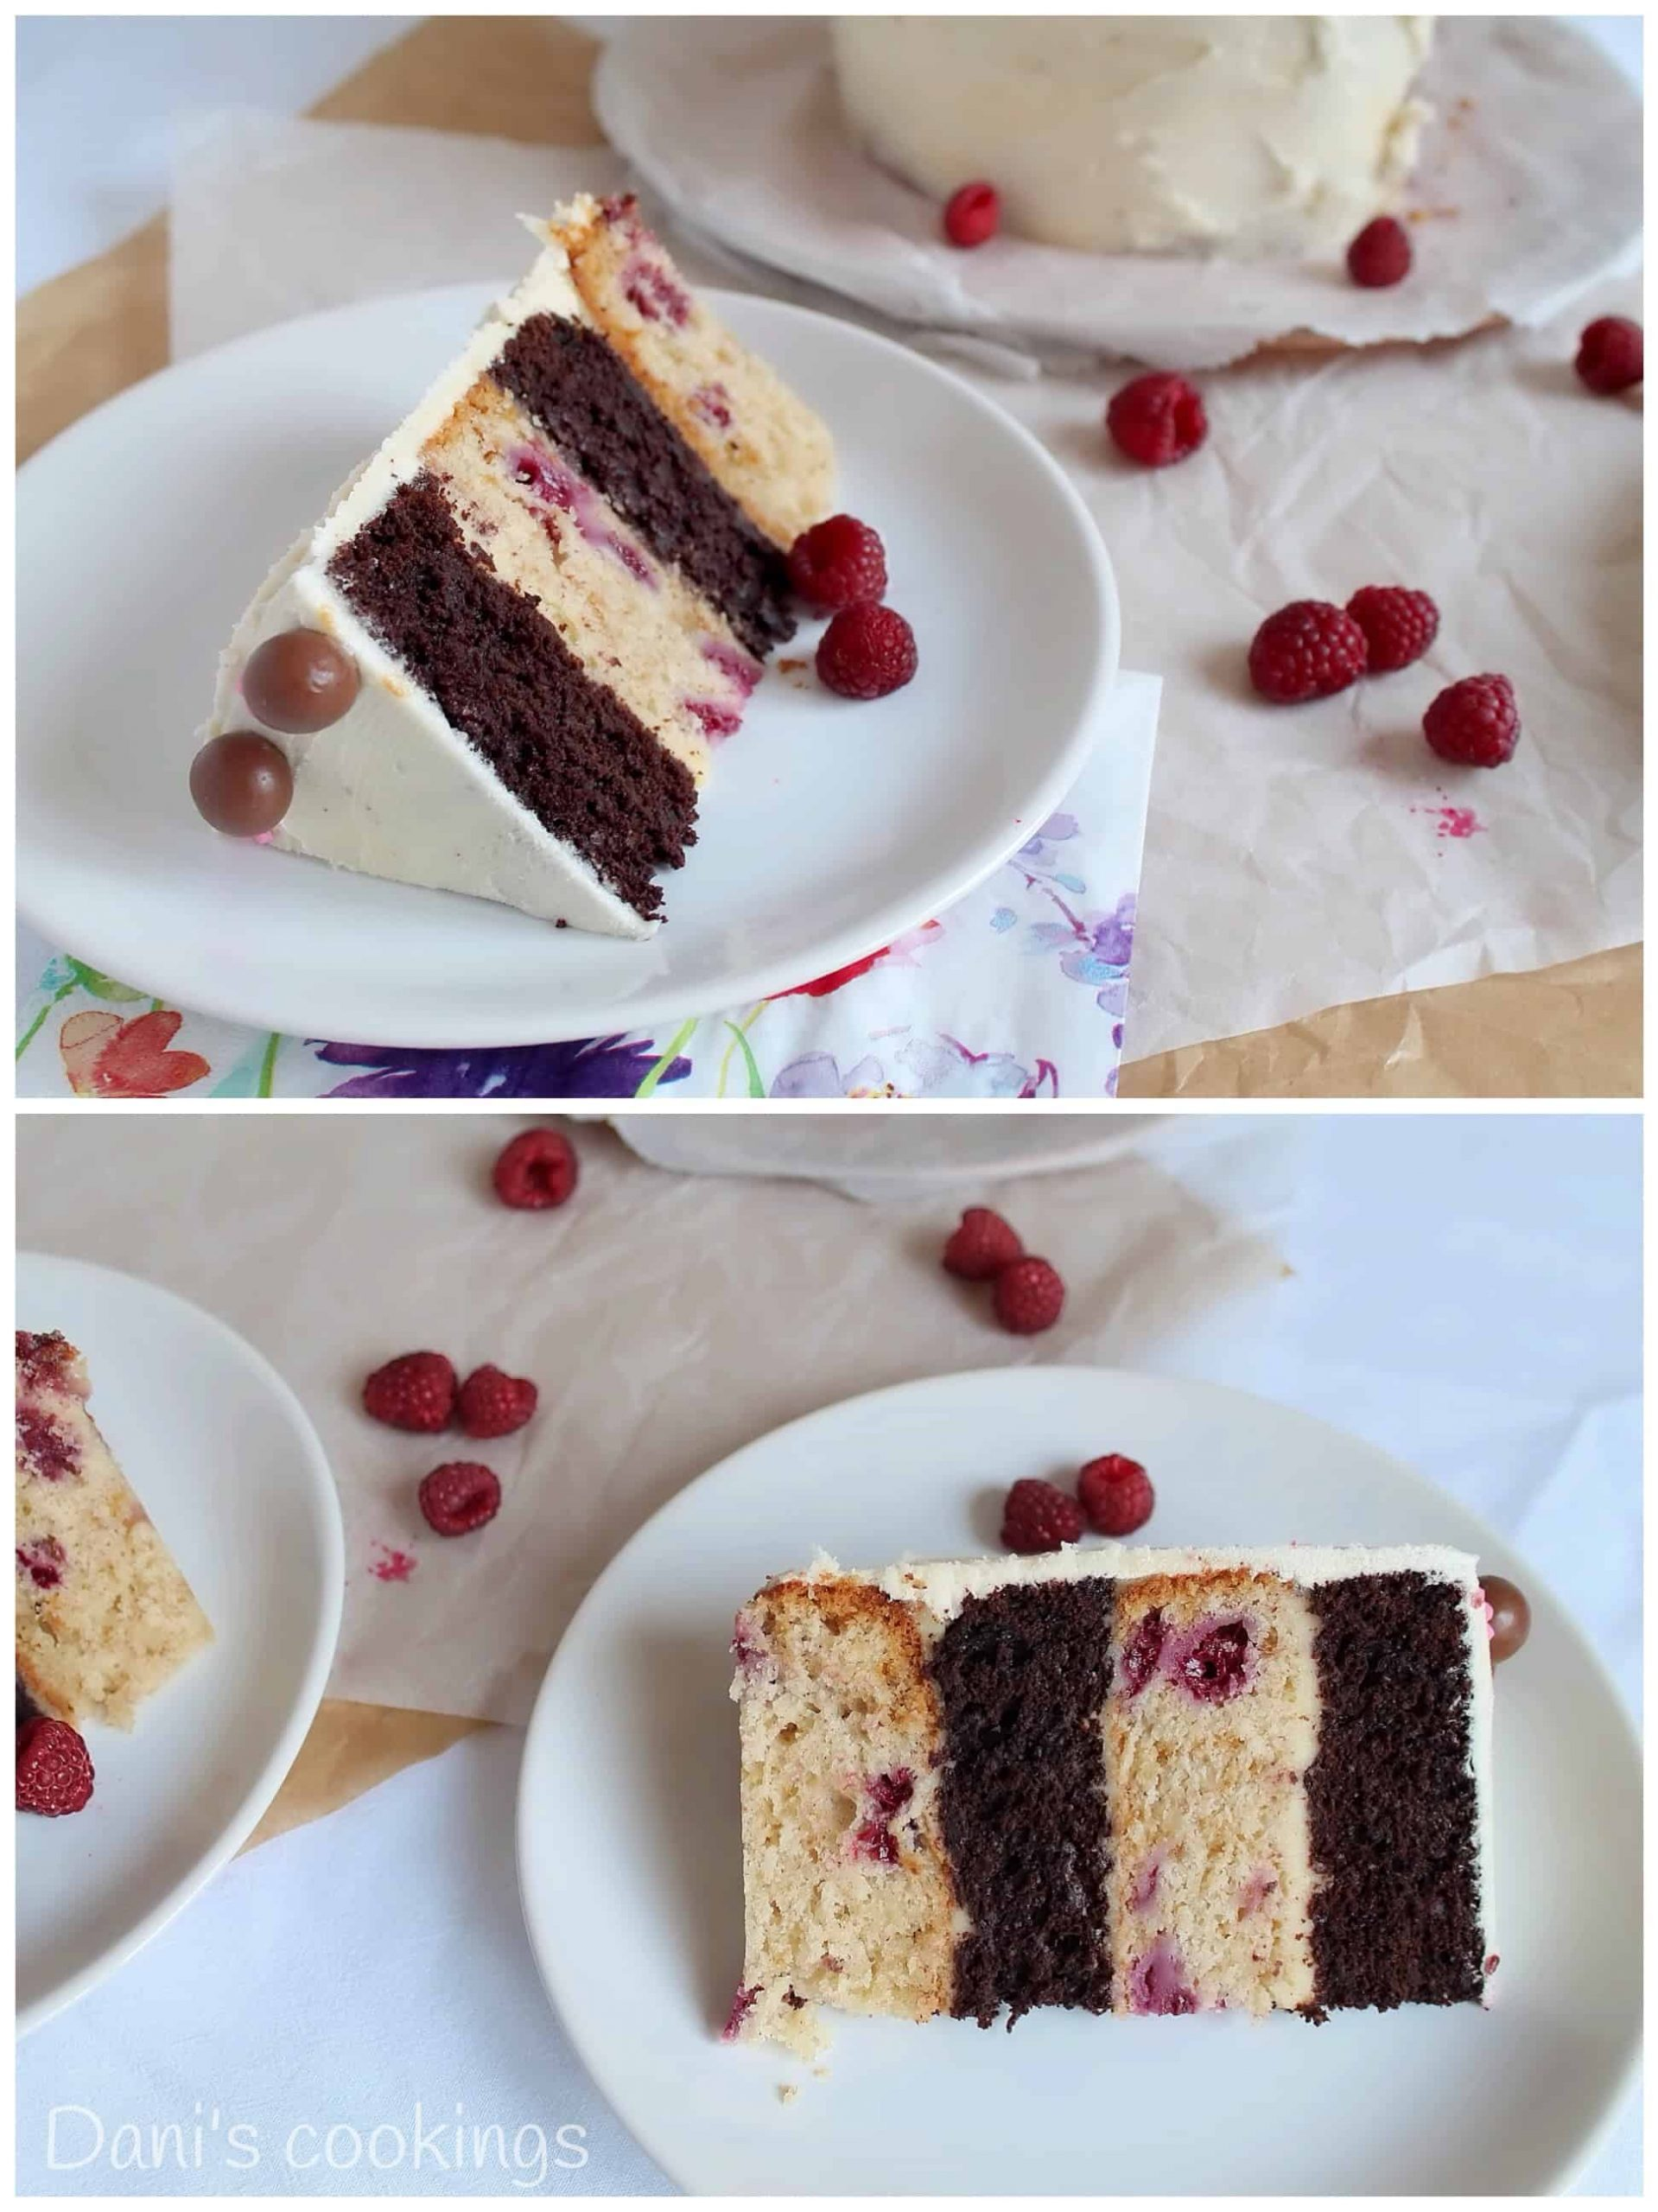 two images of cake layers on plates